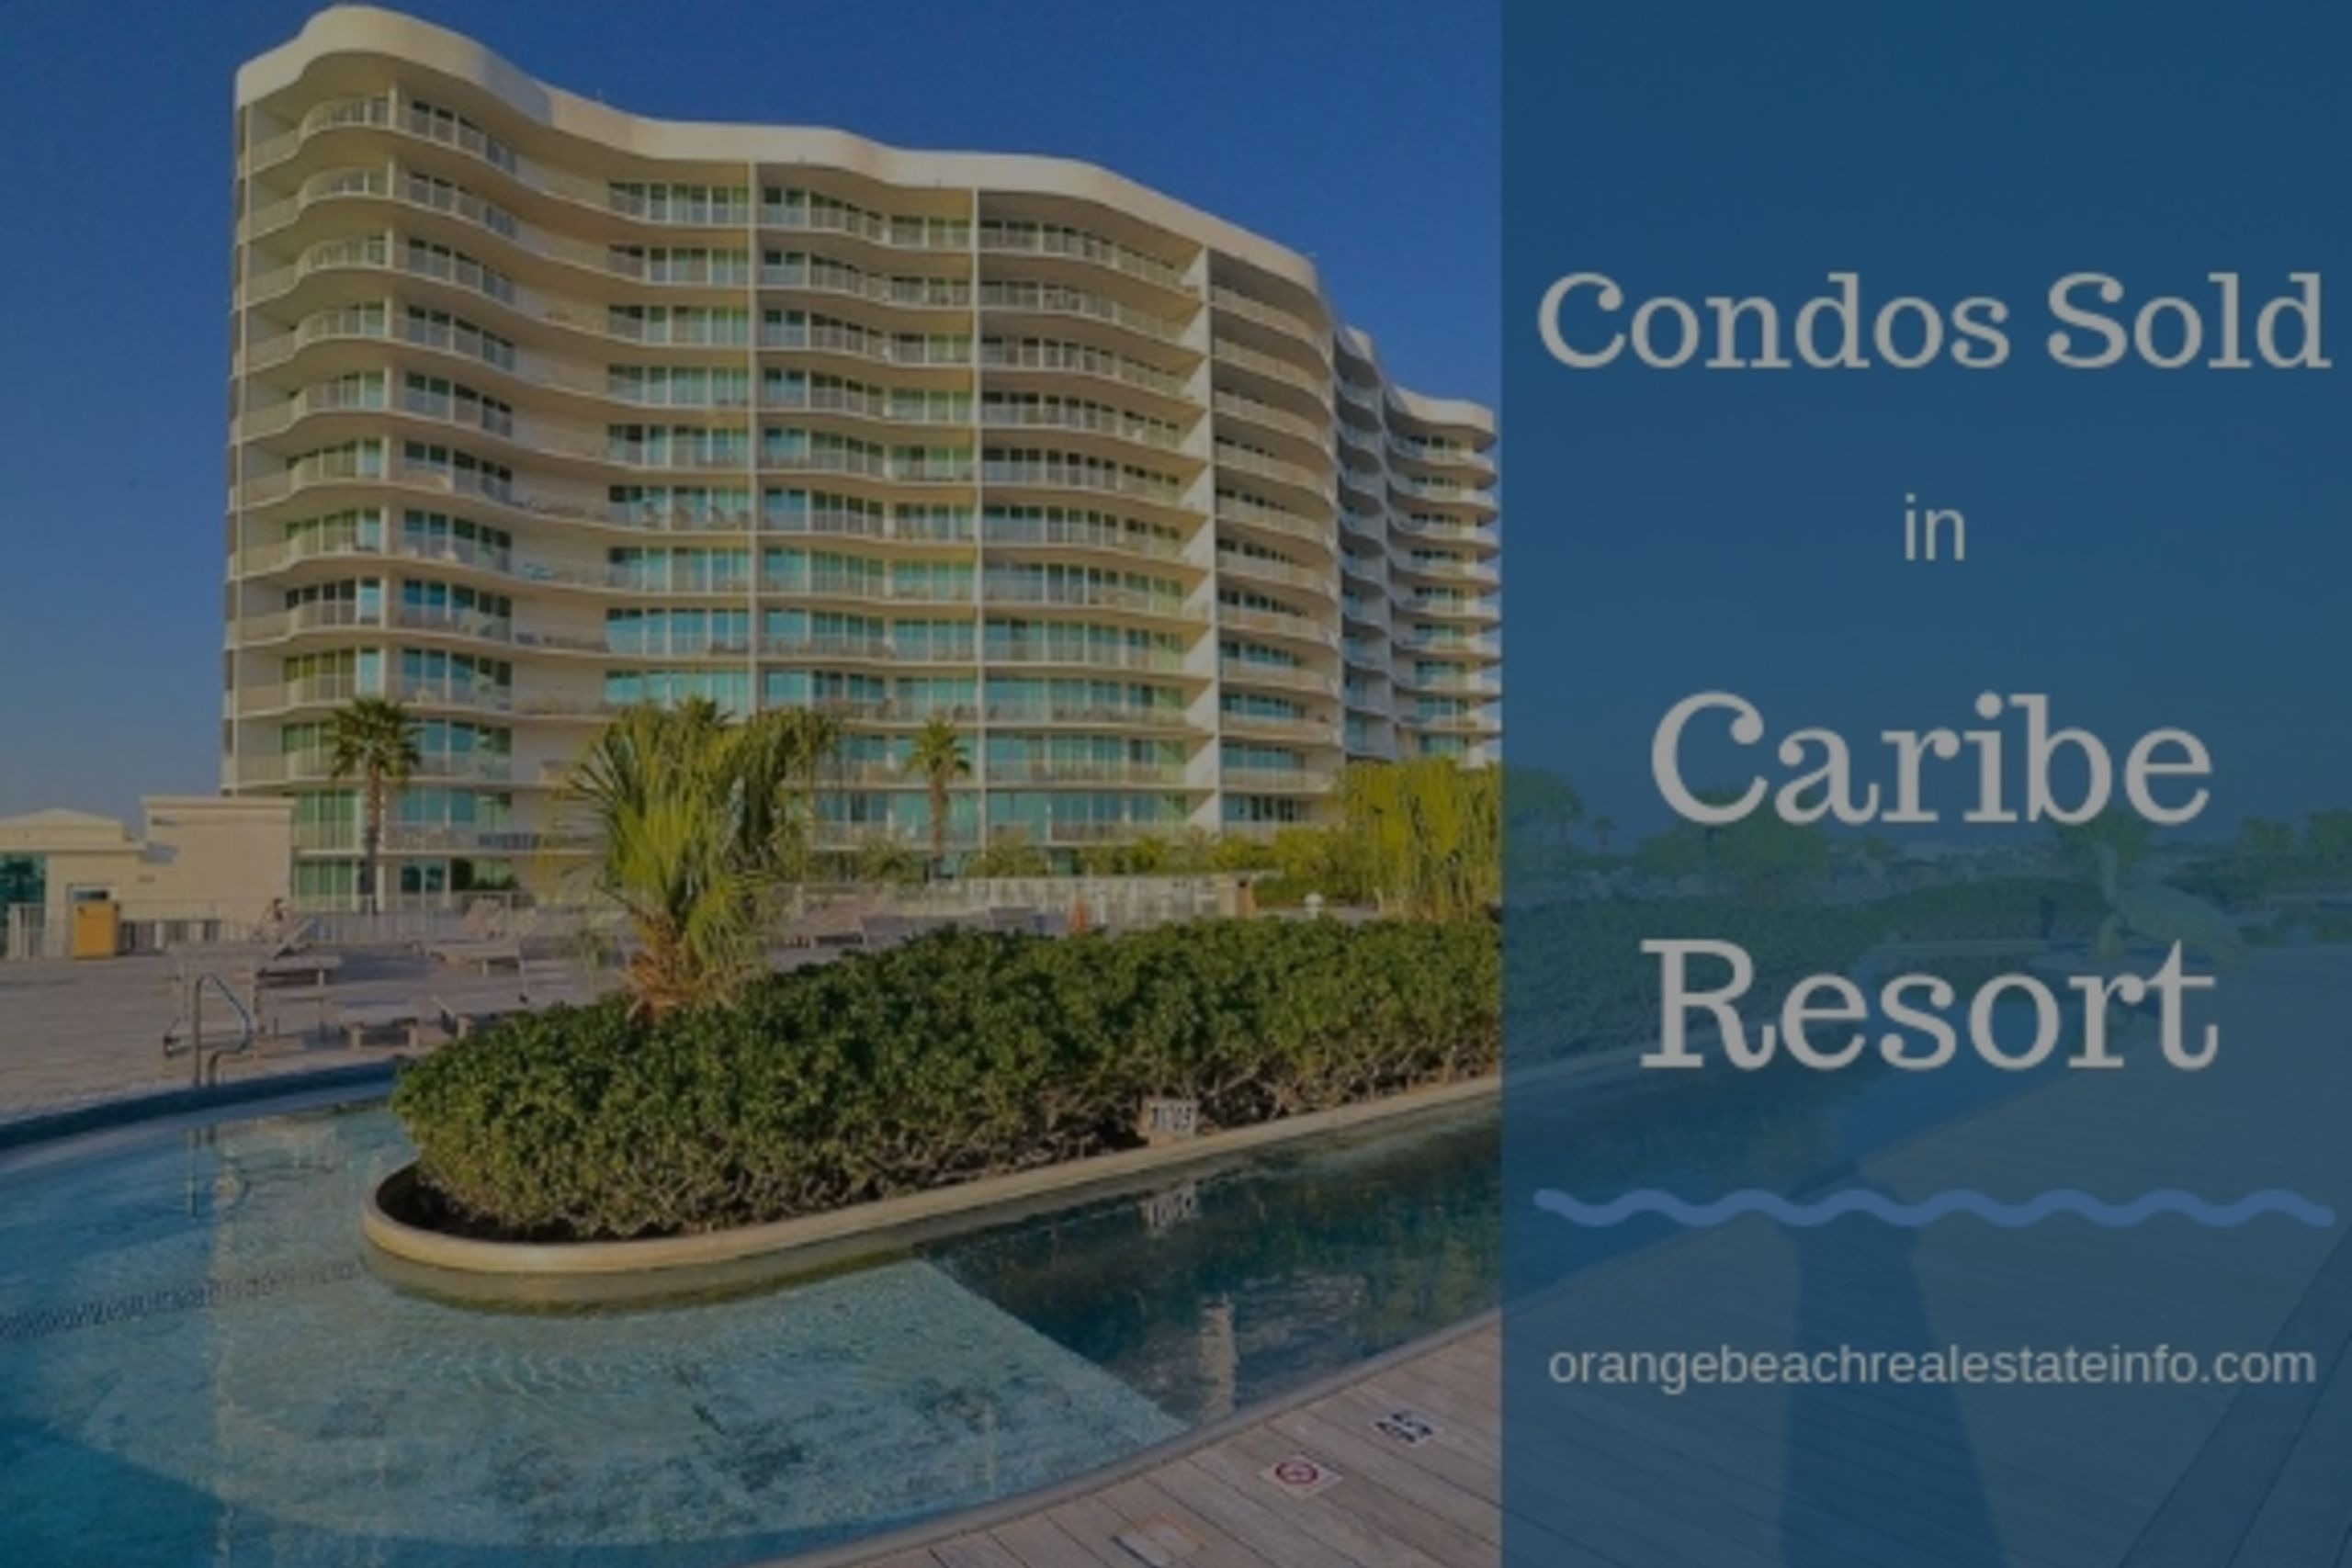 Condos Sold in Caribe Resort – August/September 2018